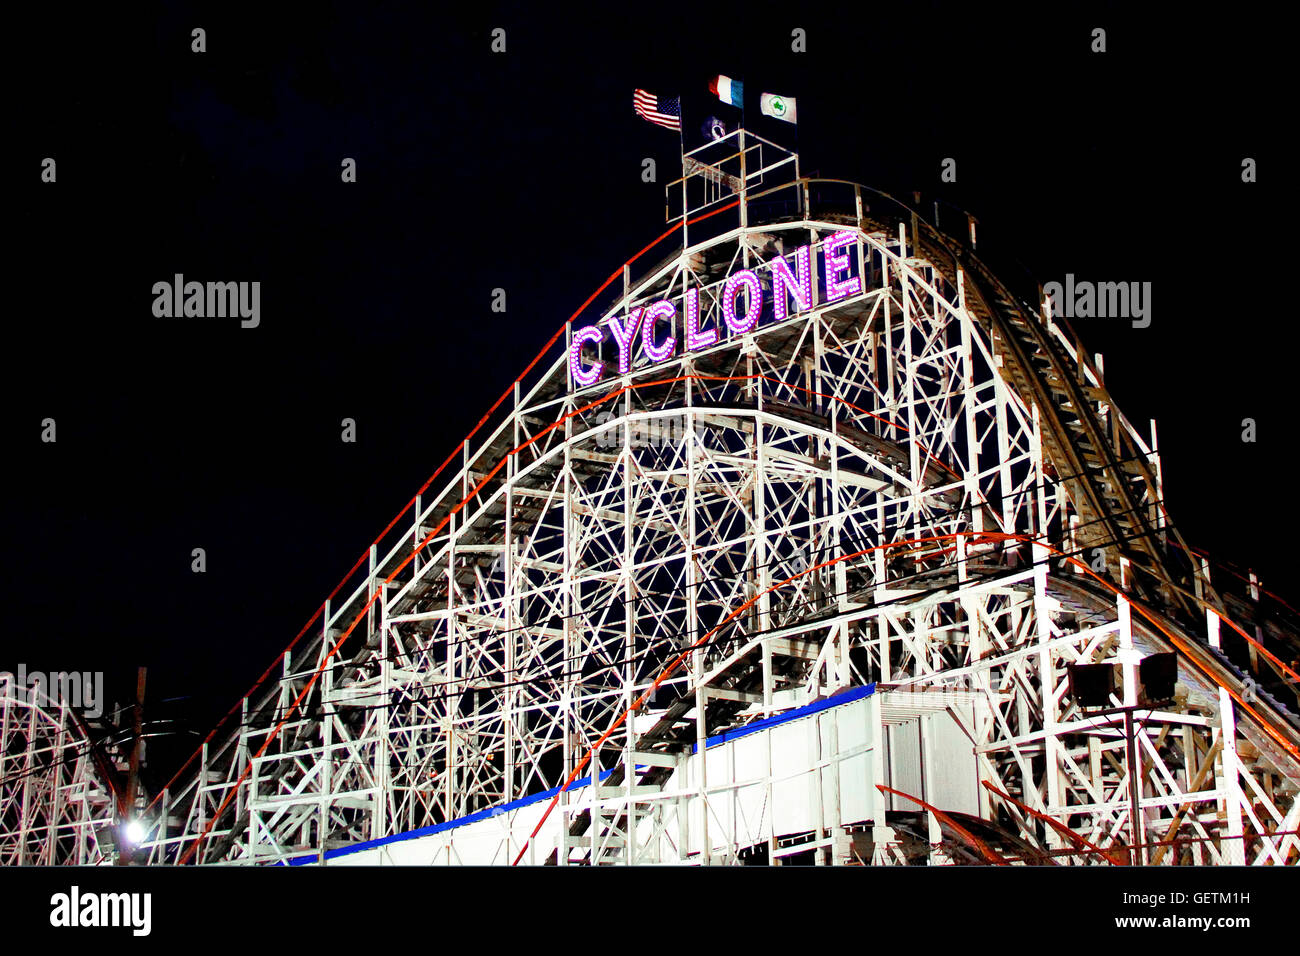 The Cyclone Rollercoaster At Coney Island At Night Stock Photo Alamy